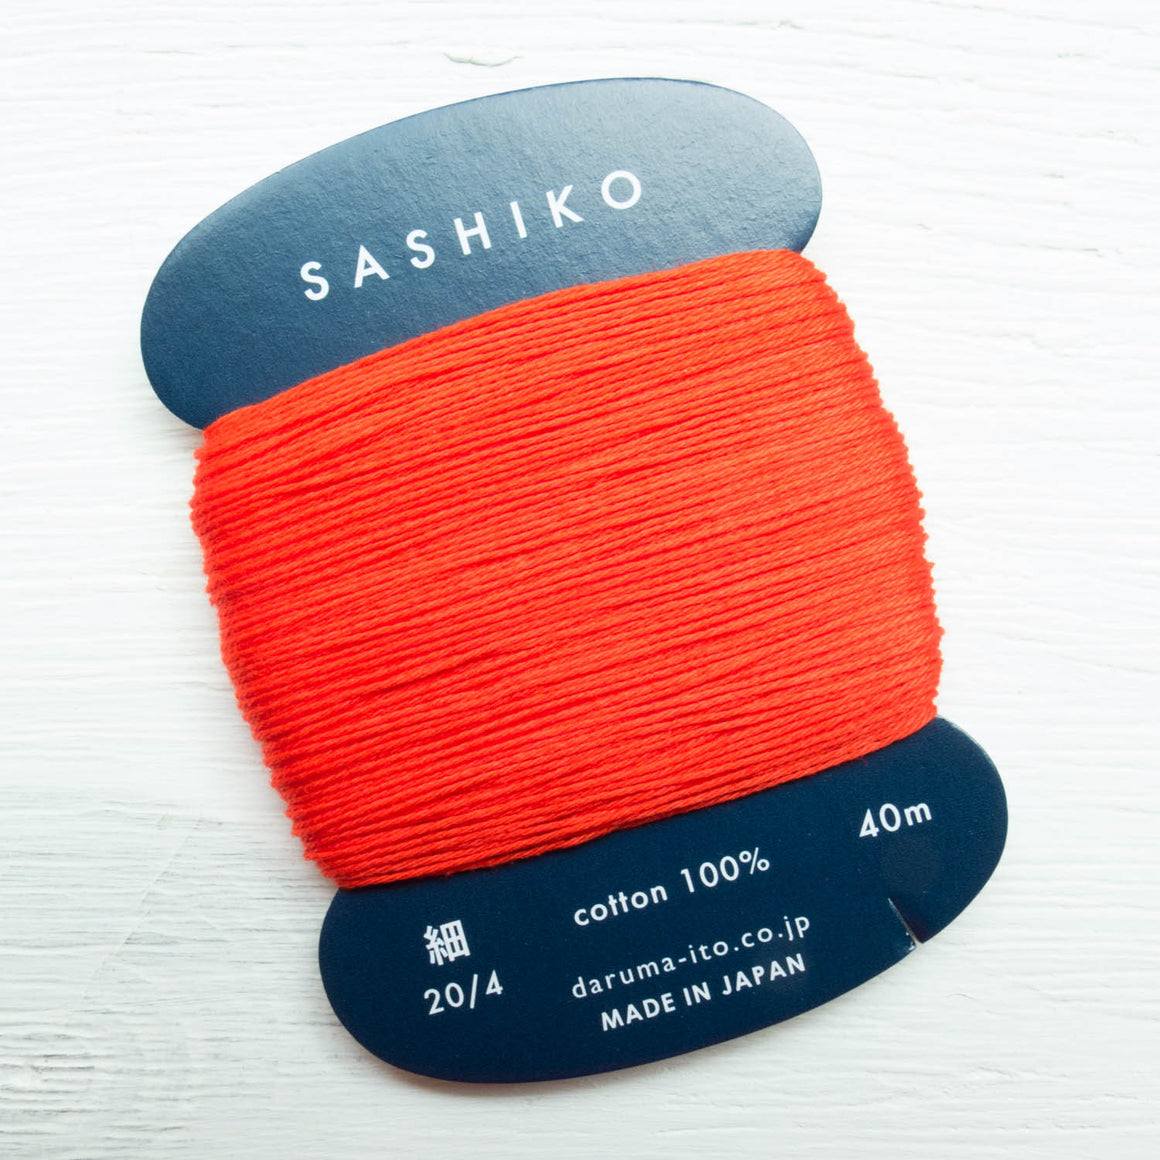 Daruma Carded Sashiko Thread - Bright Red (no. 212) Sashiko - Snuggly Monkey